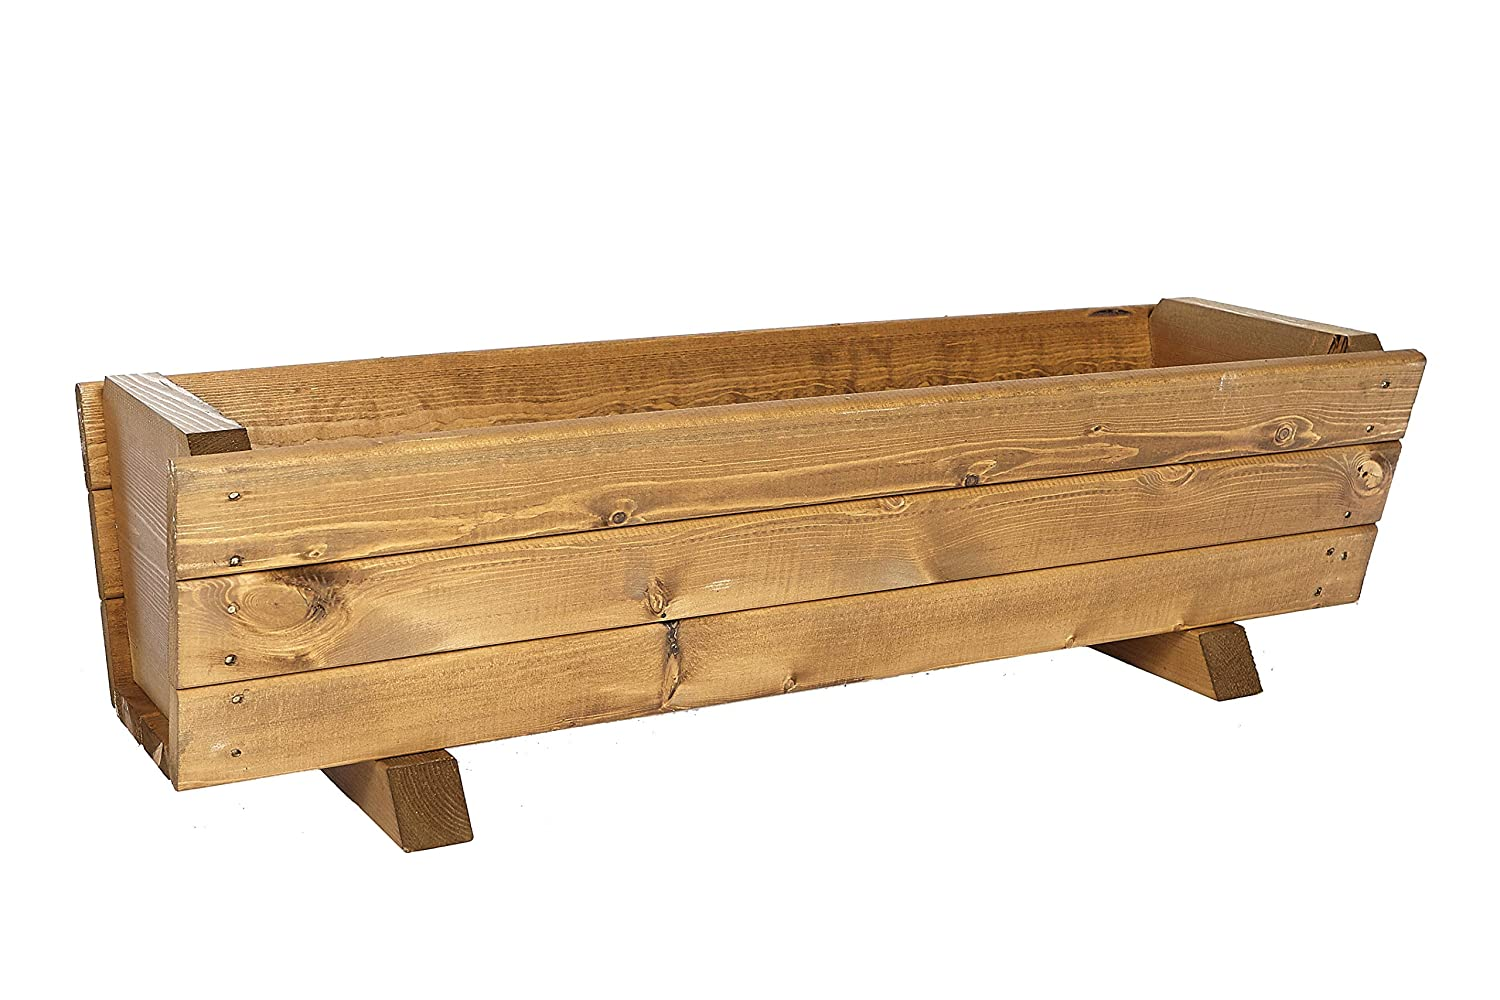 90cm Large Wooden Planter by Ruddings Wood